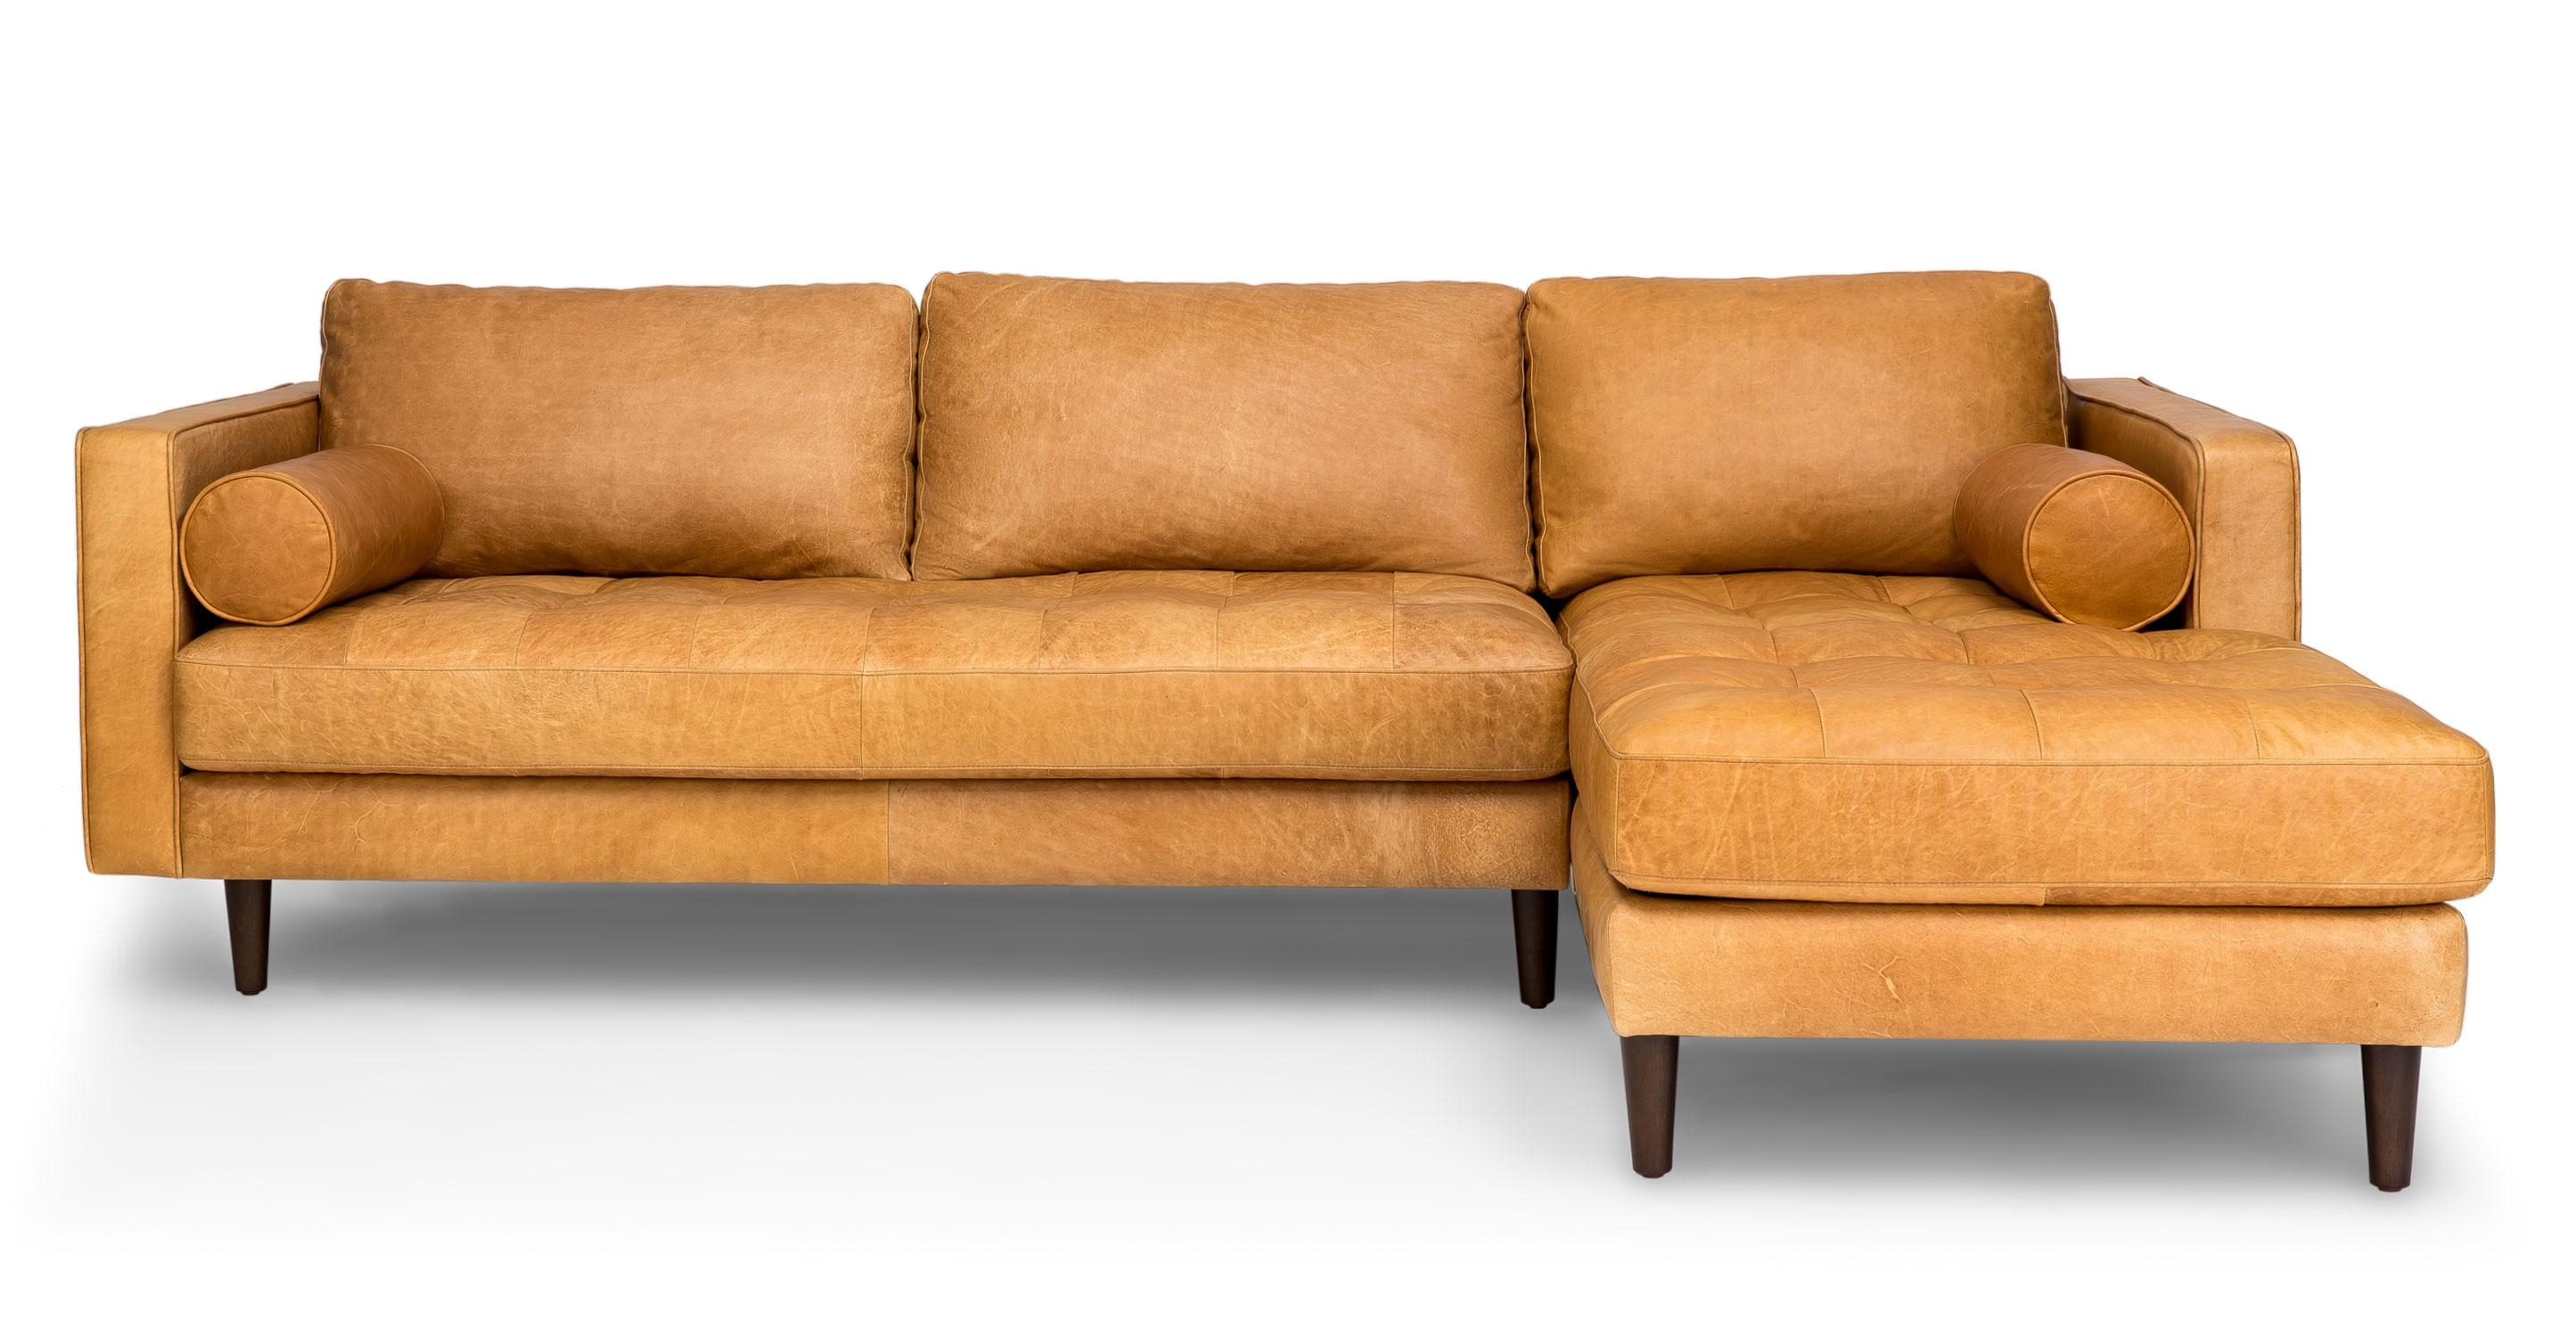 Sofas Center : Mid Century Modern Sectional Sofa Curved Style Intended For Mid Century Modern Leather Sectional (View 5 of 20)